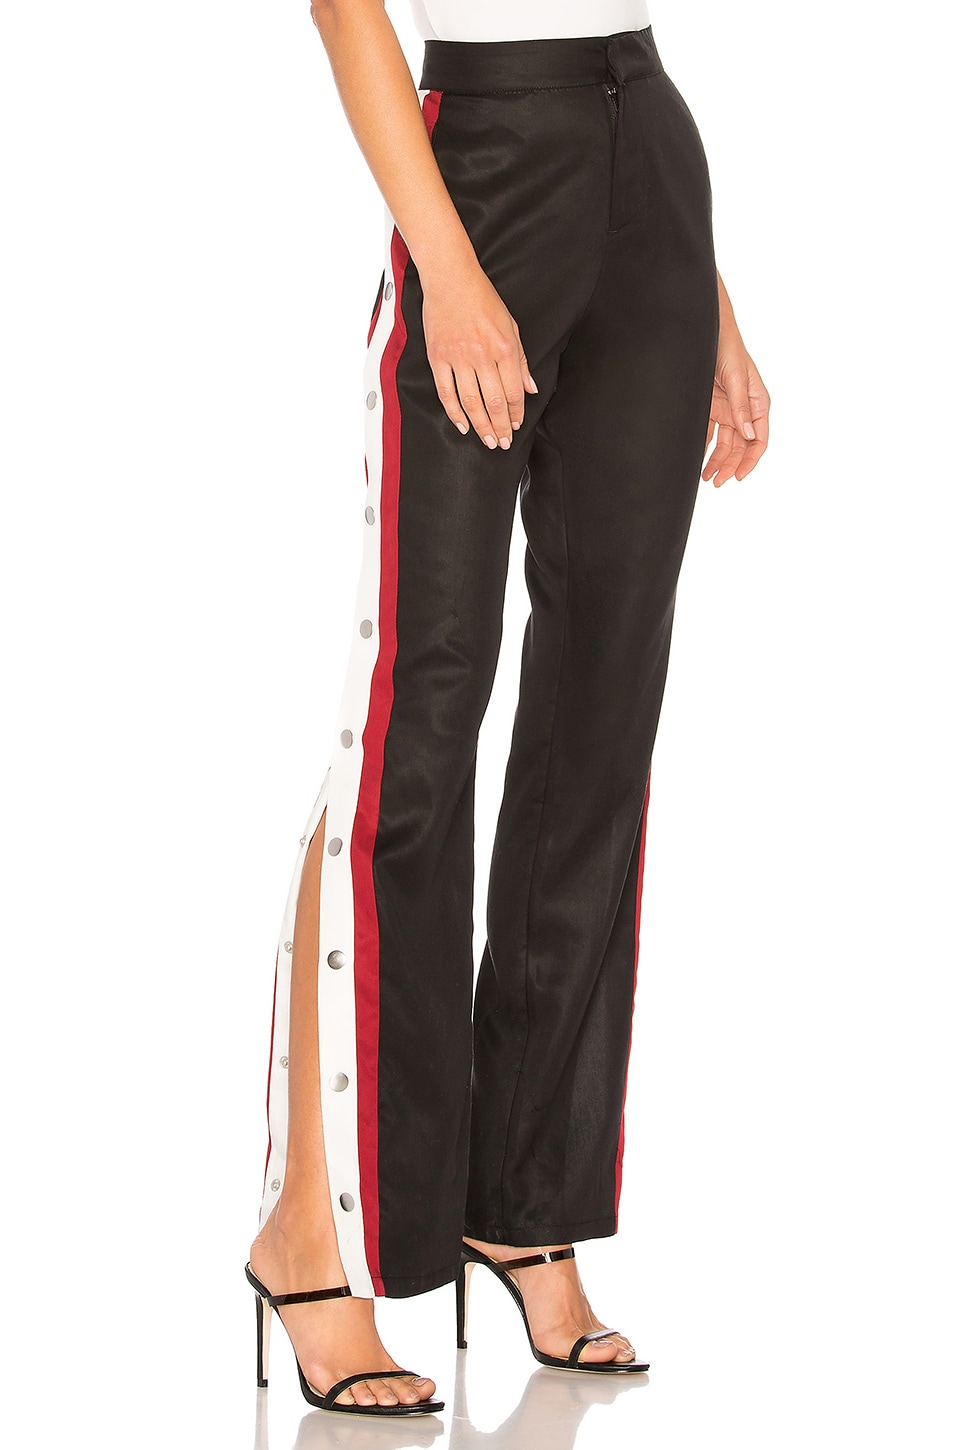 Lovers + Friends Tailored Snap Track Pant in Black